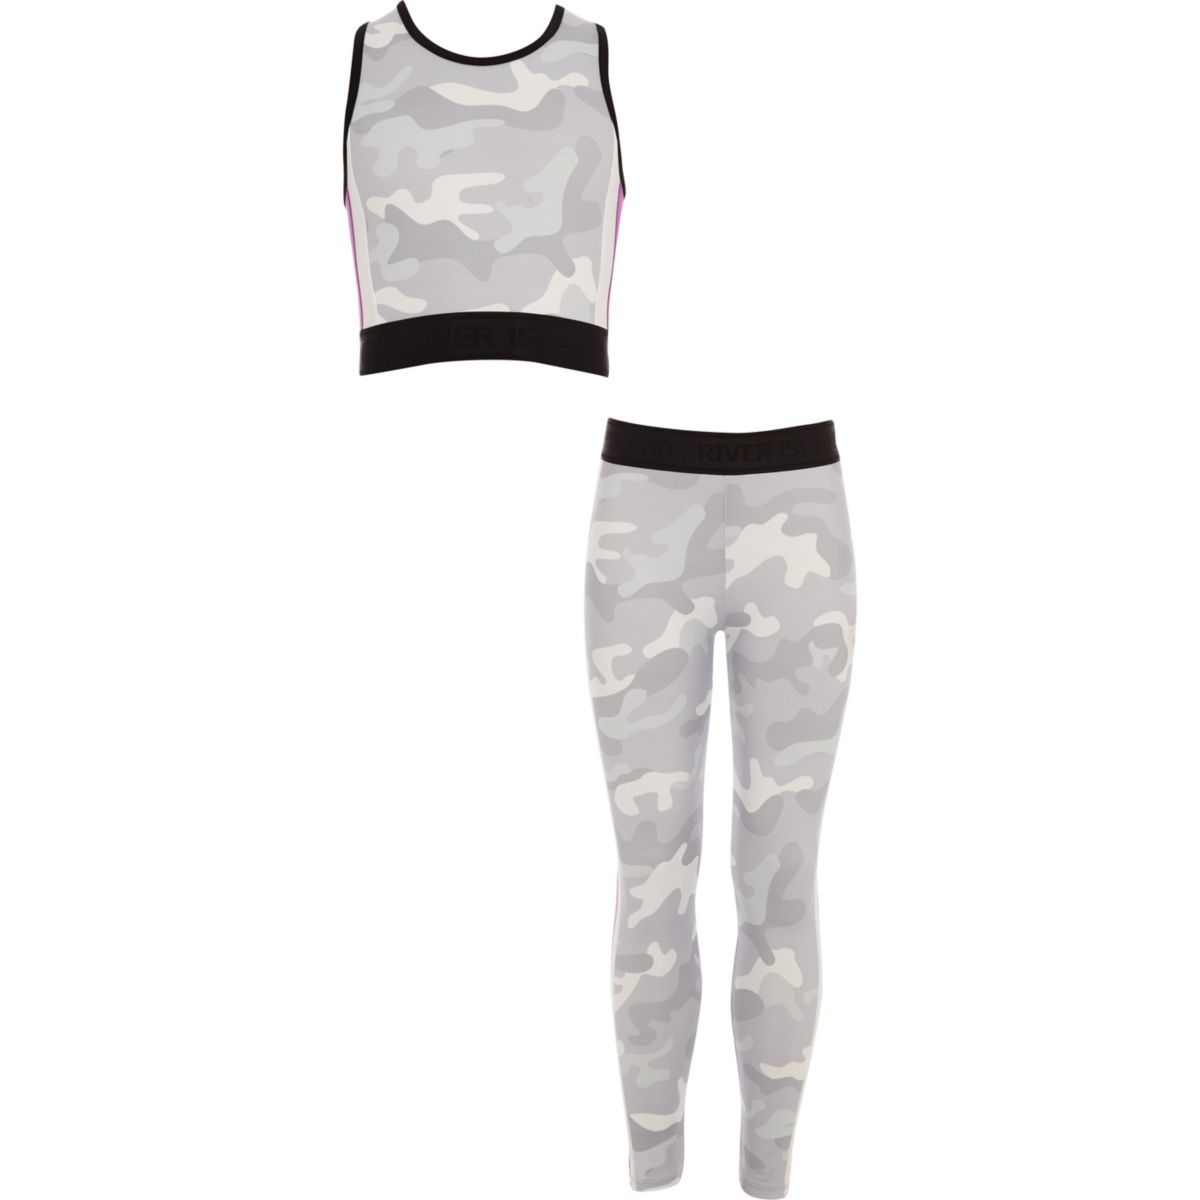 Girls grey camo crop top and legging outfit